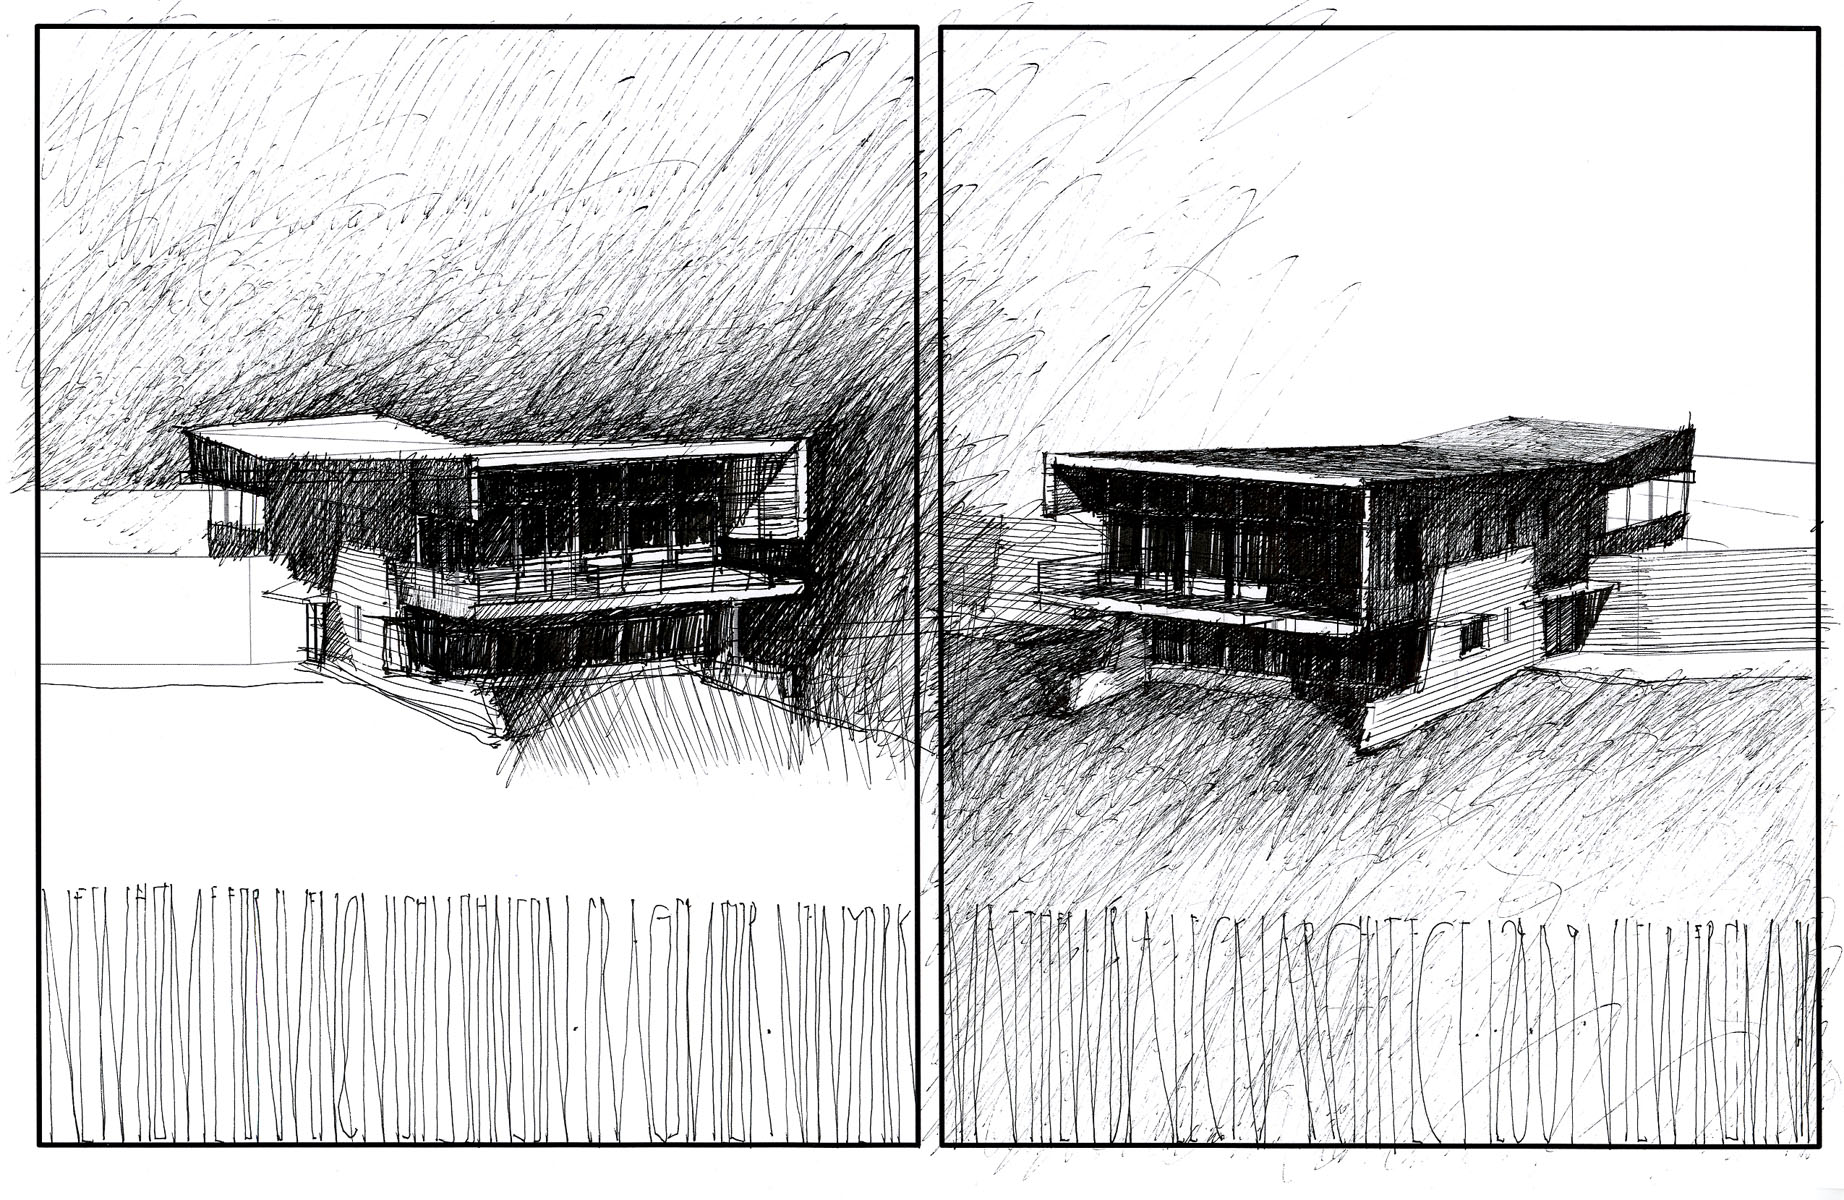 North Elevation Sketch Studies